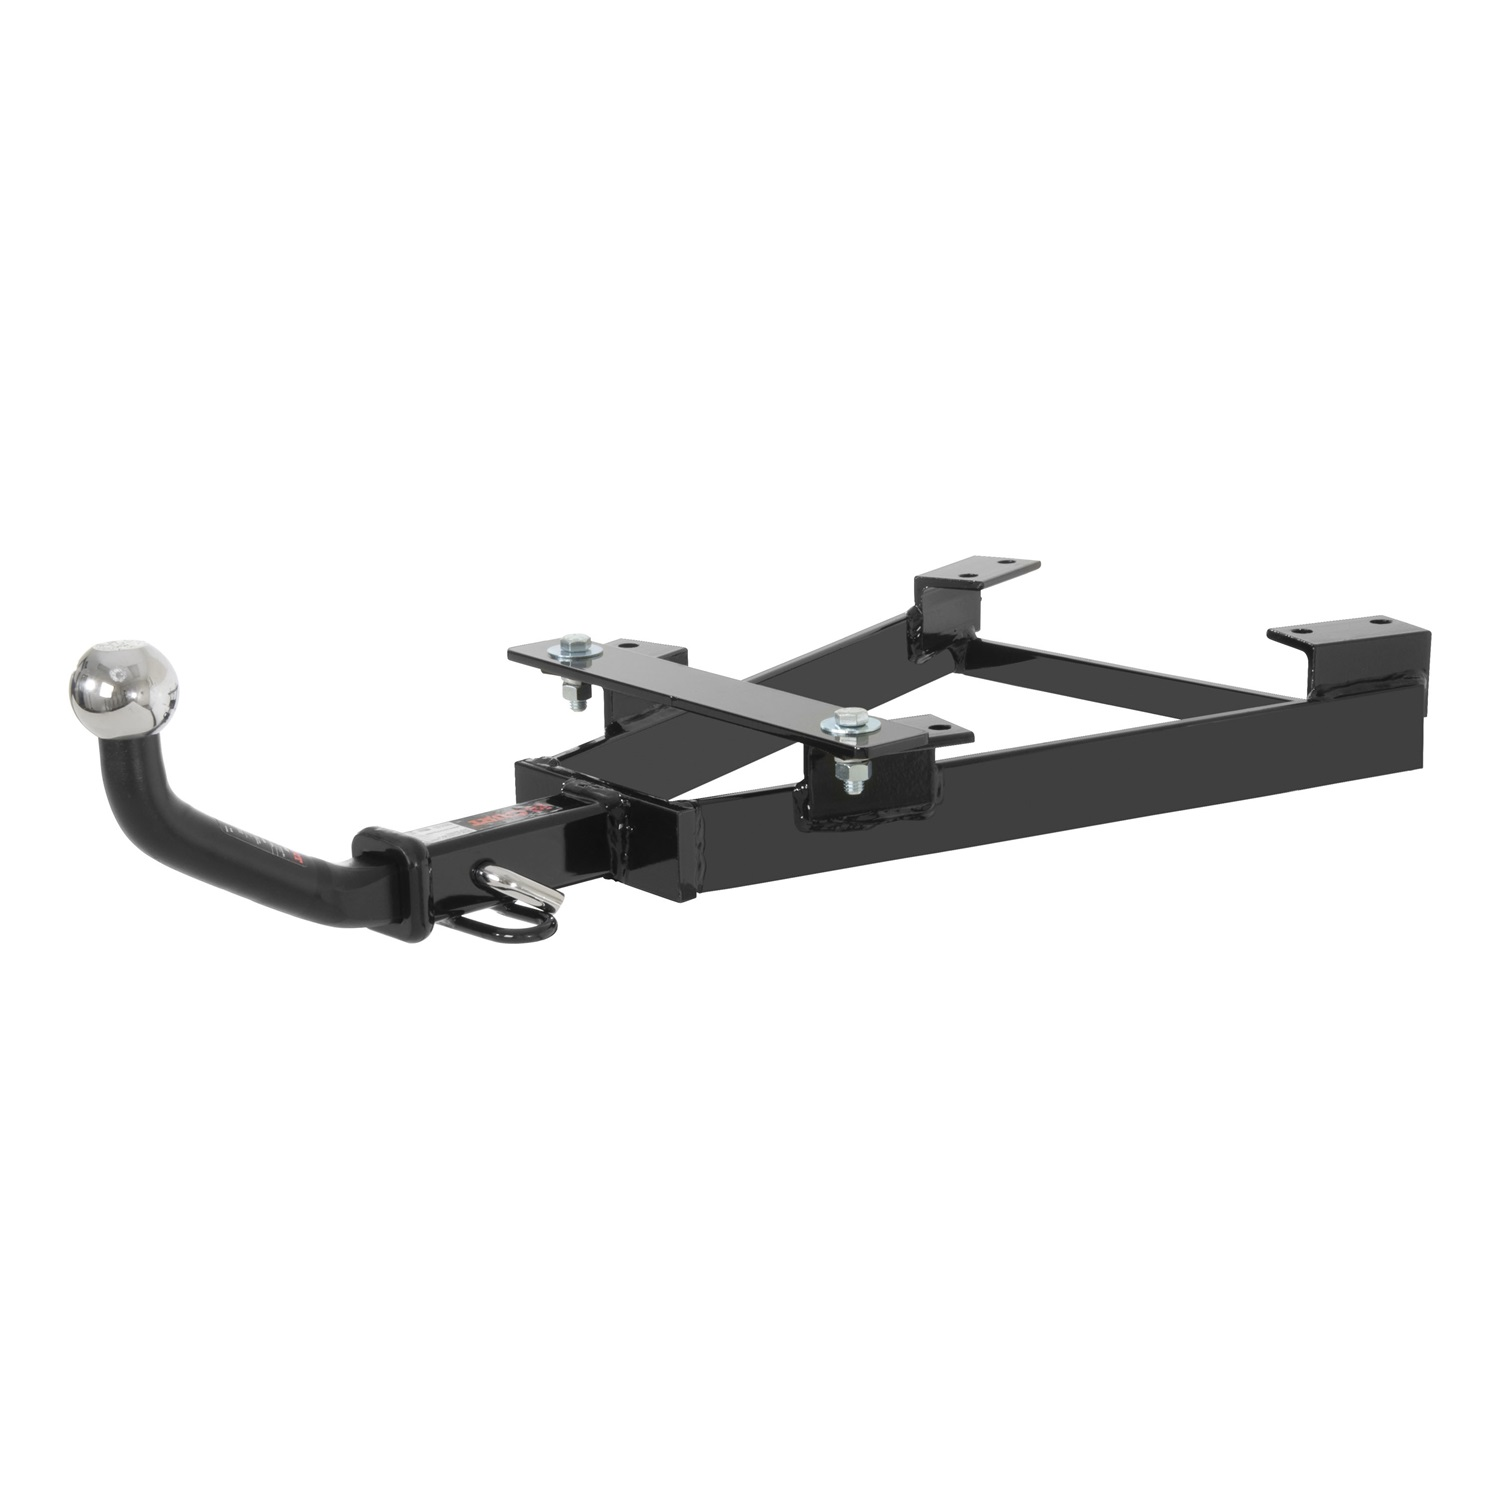 CURT Manufacturing 112181 Class I; 1.25 in. Receiver Hitch 97-01 Tiburon at Sears.com